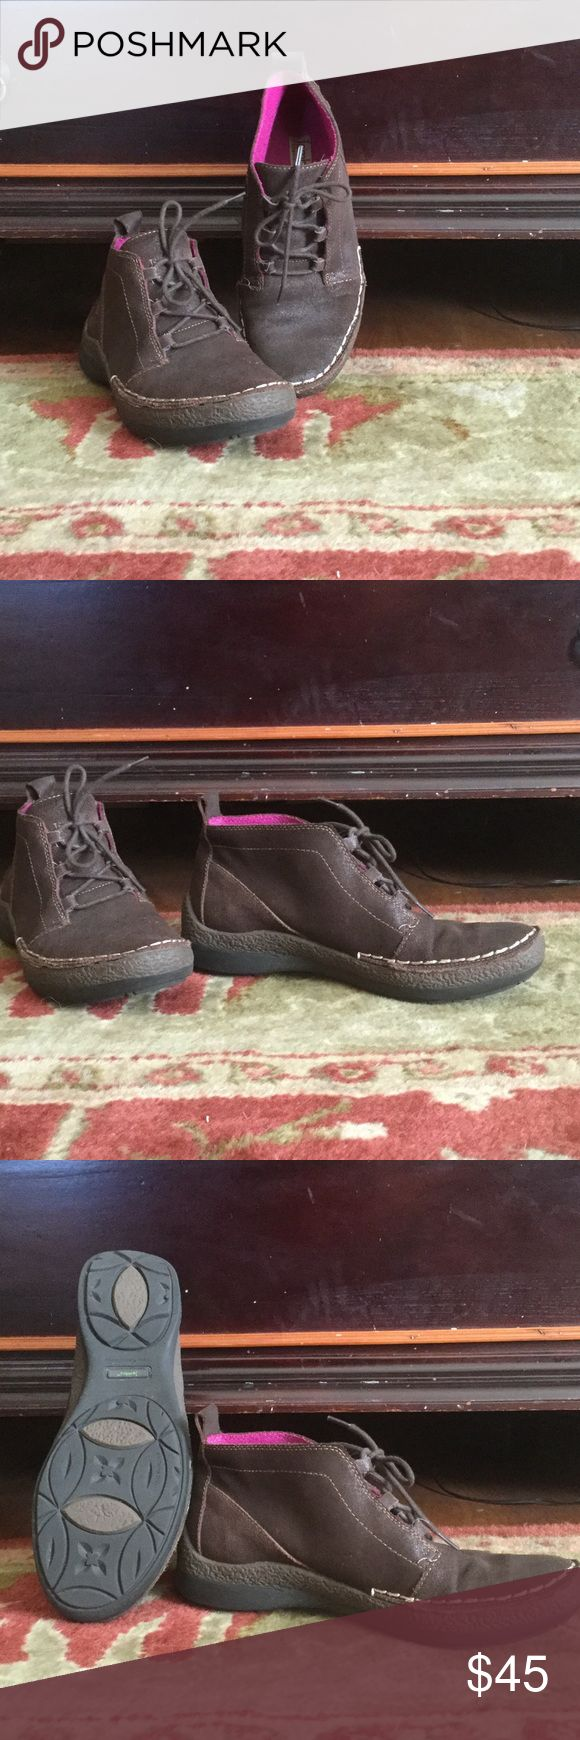 Jambu Chukka boot Jambu Eco Design 'Madison' Chukka boot. Leather upper with sustainable, biodegradable outsoles. Memory foam footbed. Comes with original box, dust covers for each shoe and additional color shoelace. Jambu Shoes Ankle Boots & Booties